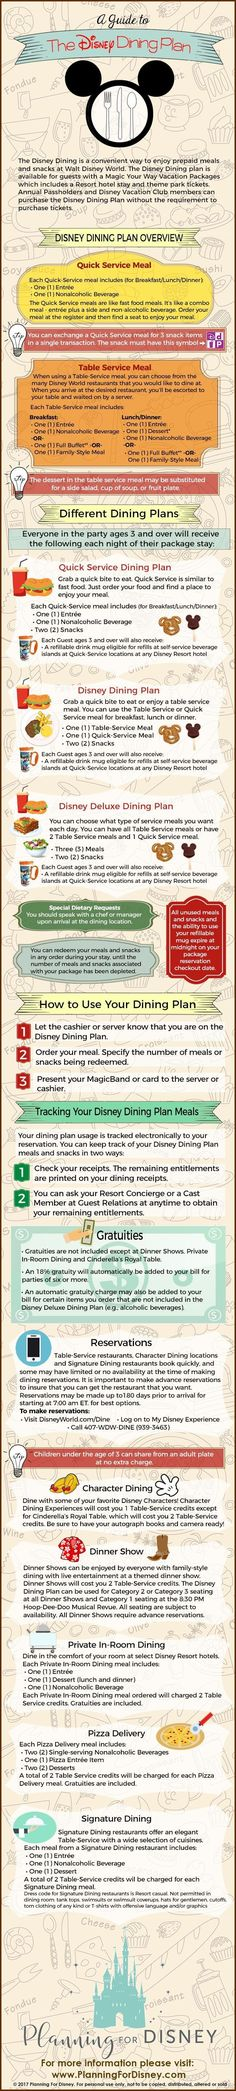 Disney Dining Plan G